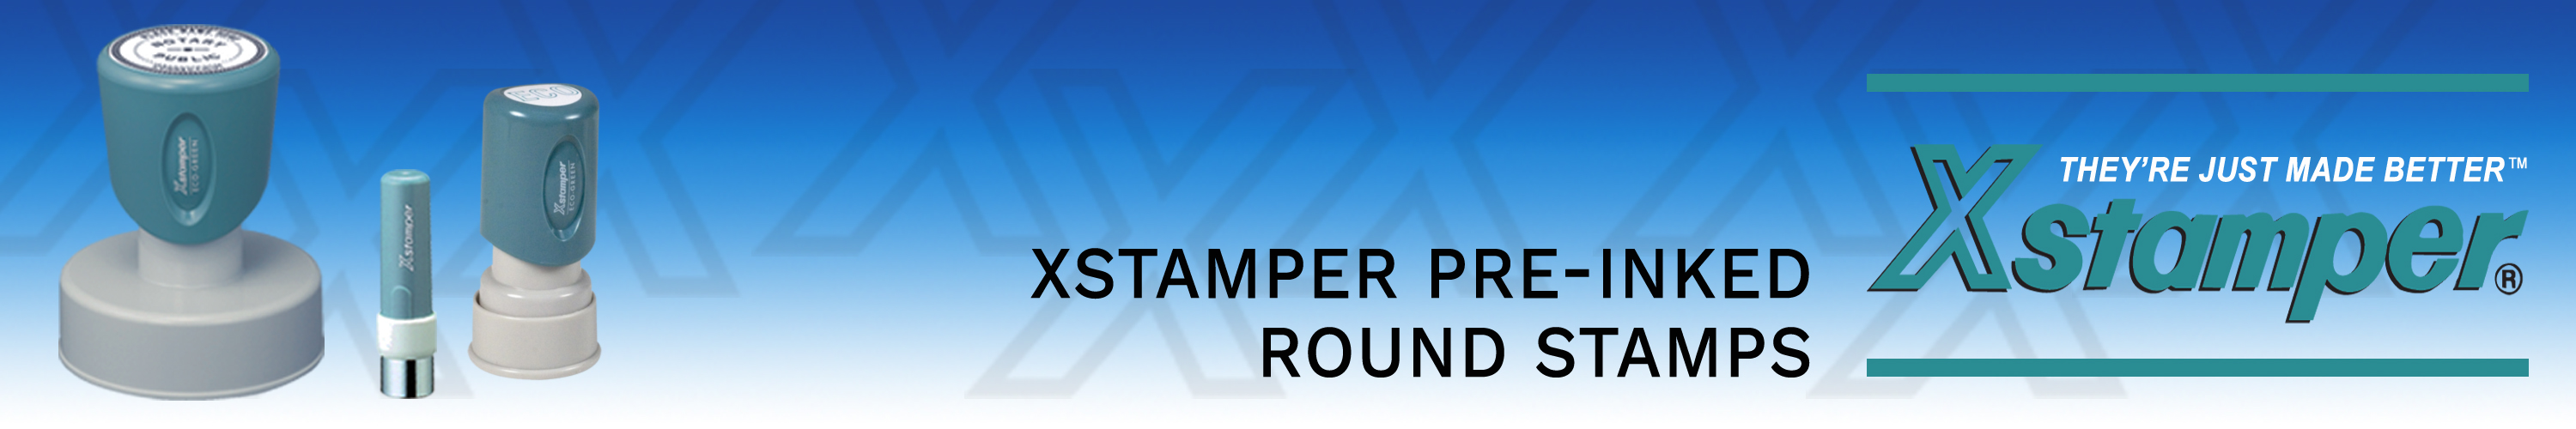 Xstamper Round Stamps Made and shipped daily. Free same day shipping. No sales tax - ever.